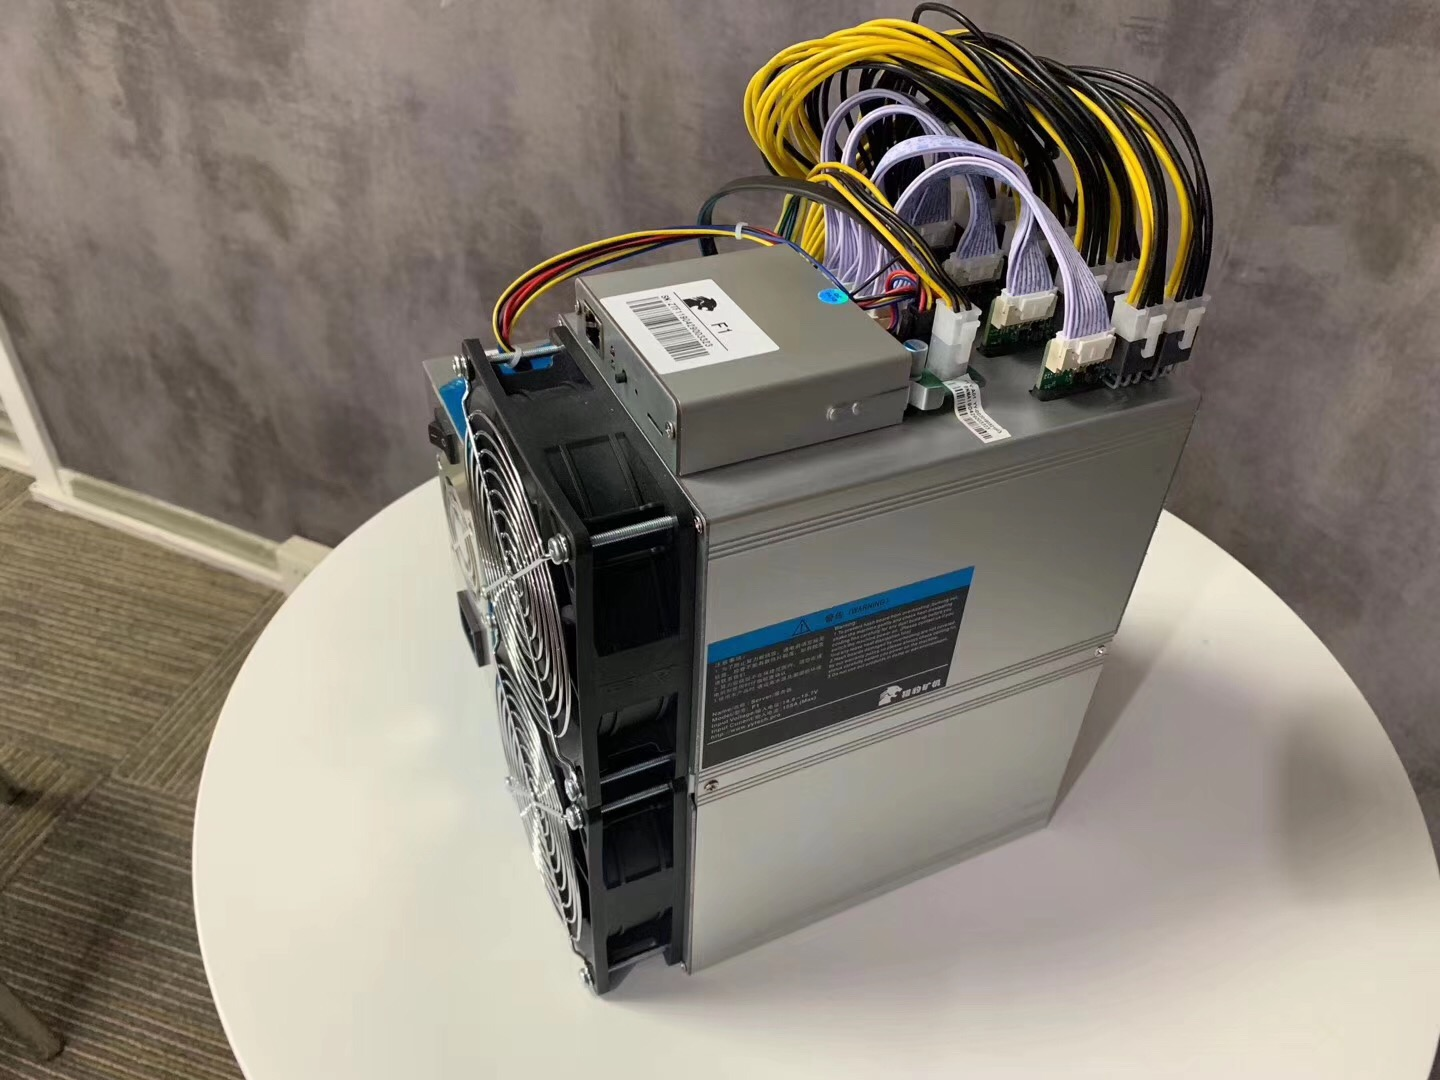 LUCBIT btc miner SHA-256 brand new love core A1 miner aixin A1 25T btc miner with psu 1